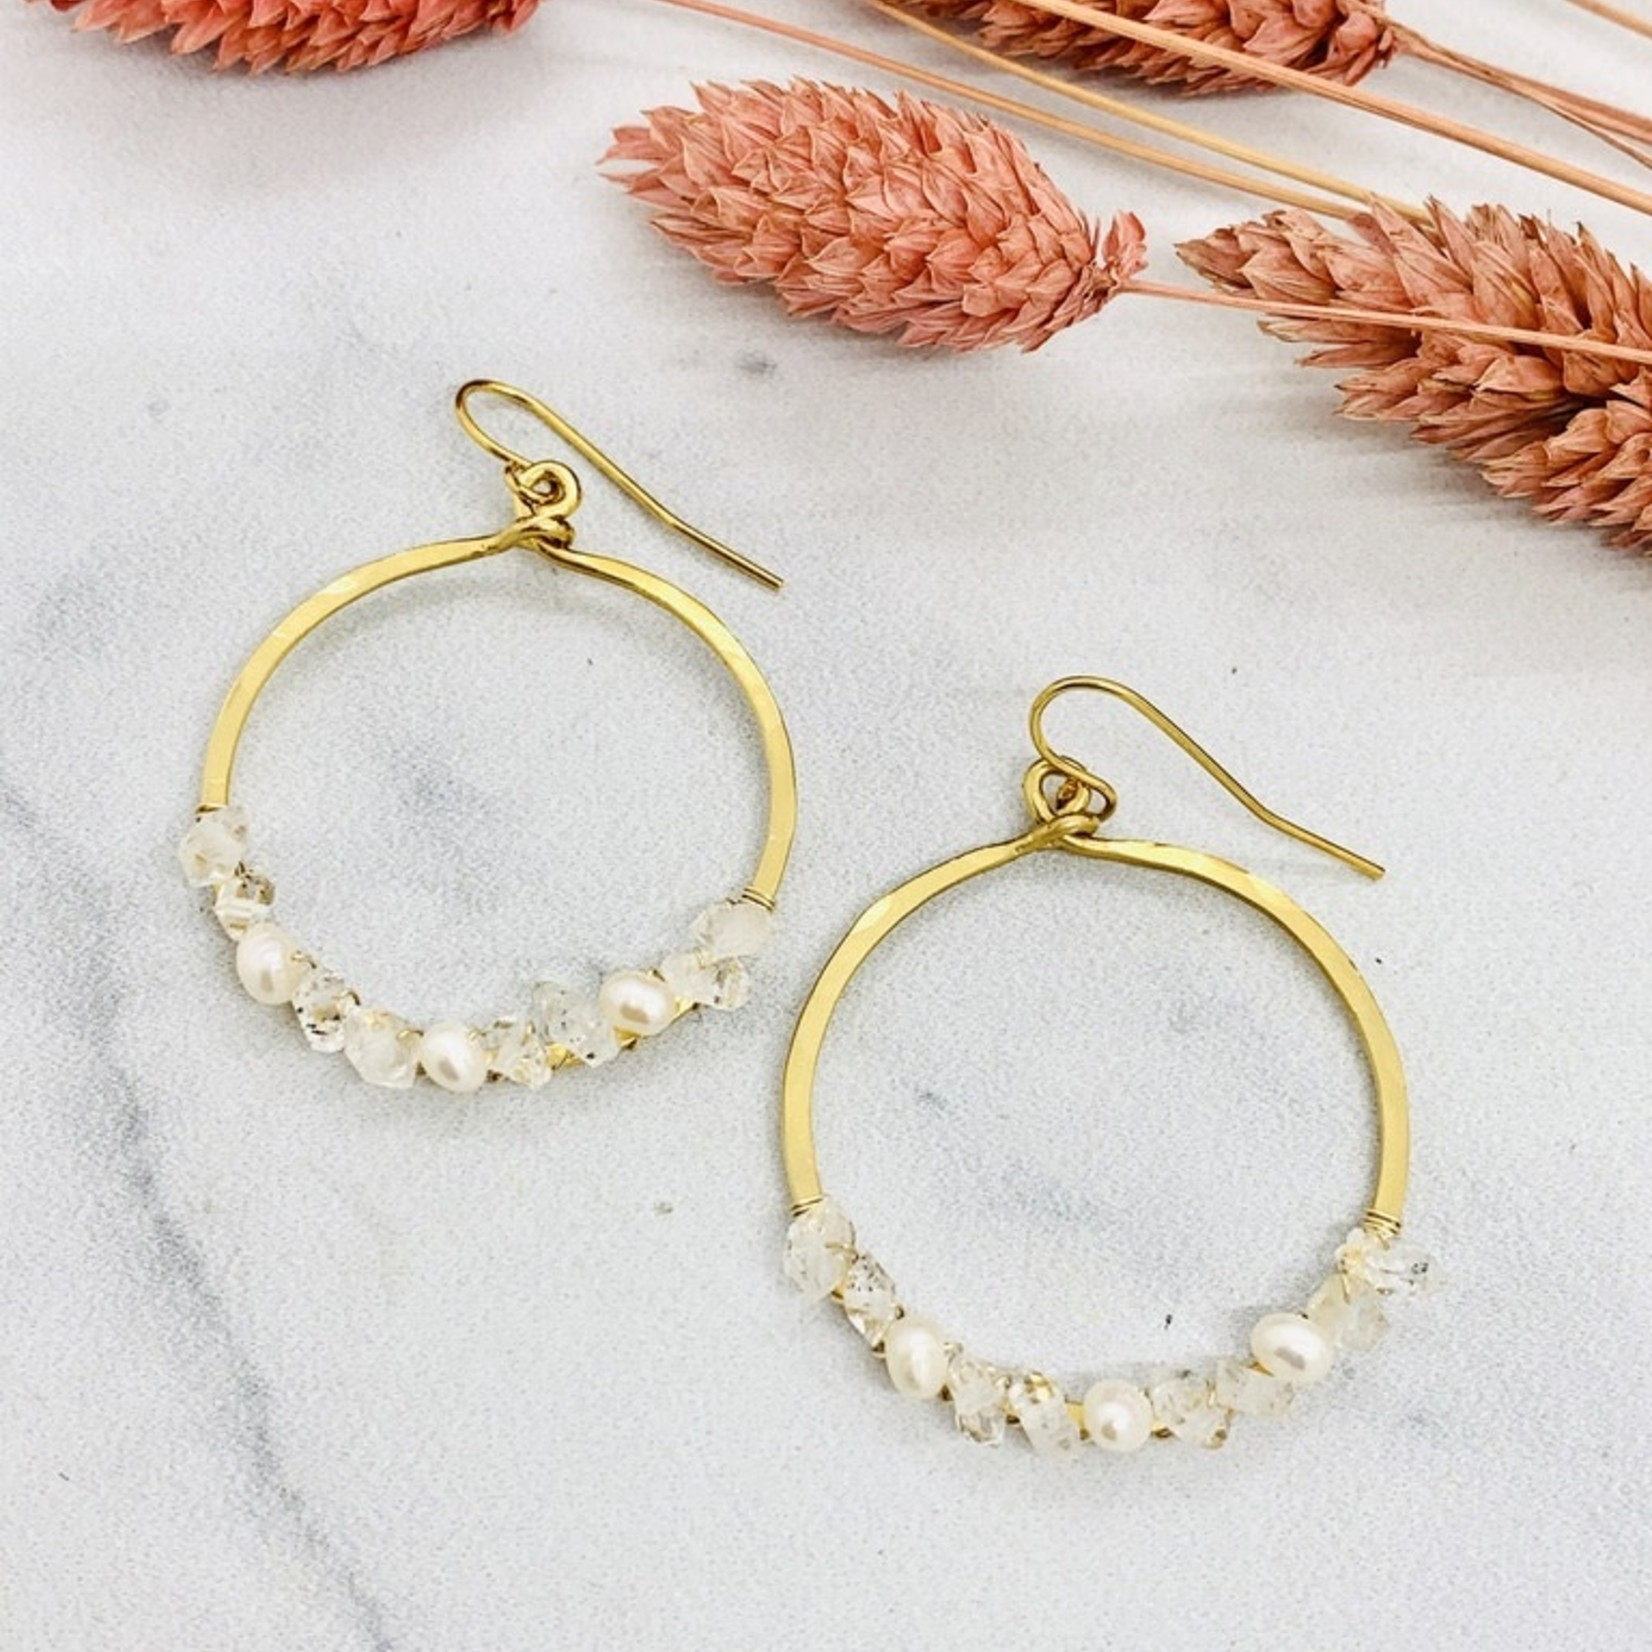 Native Gems FAIRYDUST 14K GF small circle hoop earrings with a mix of hand wrapped pearl and herkimer diamond